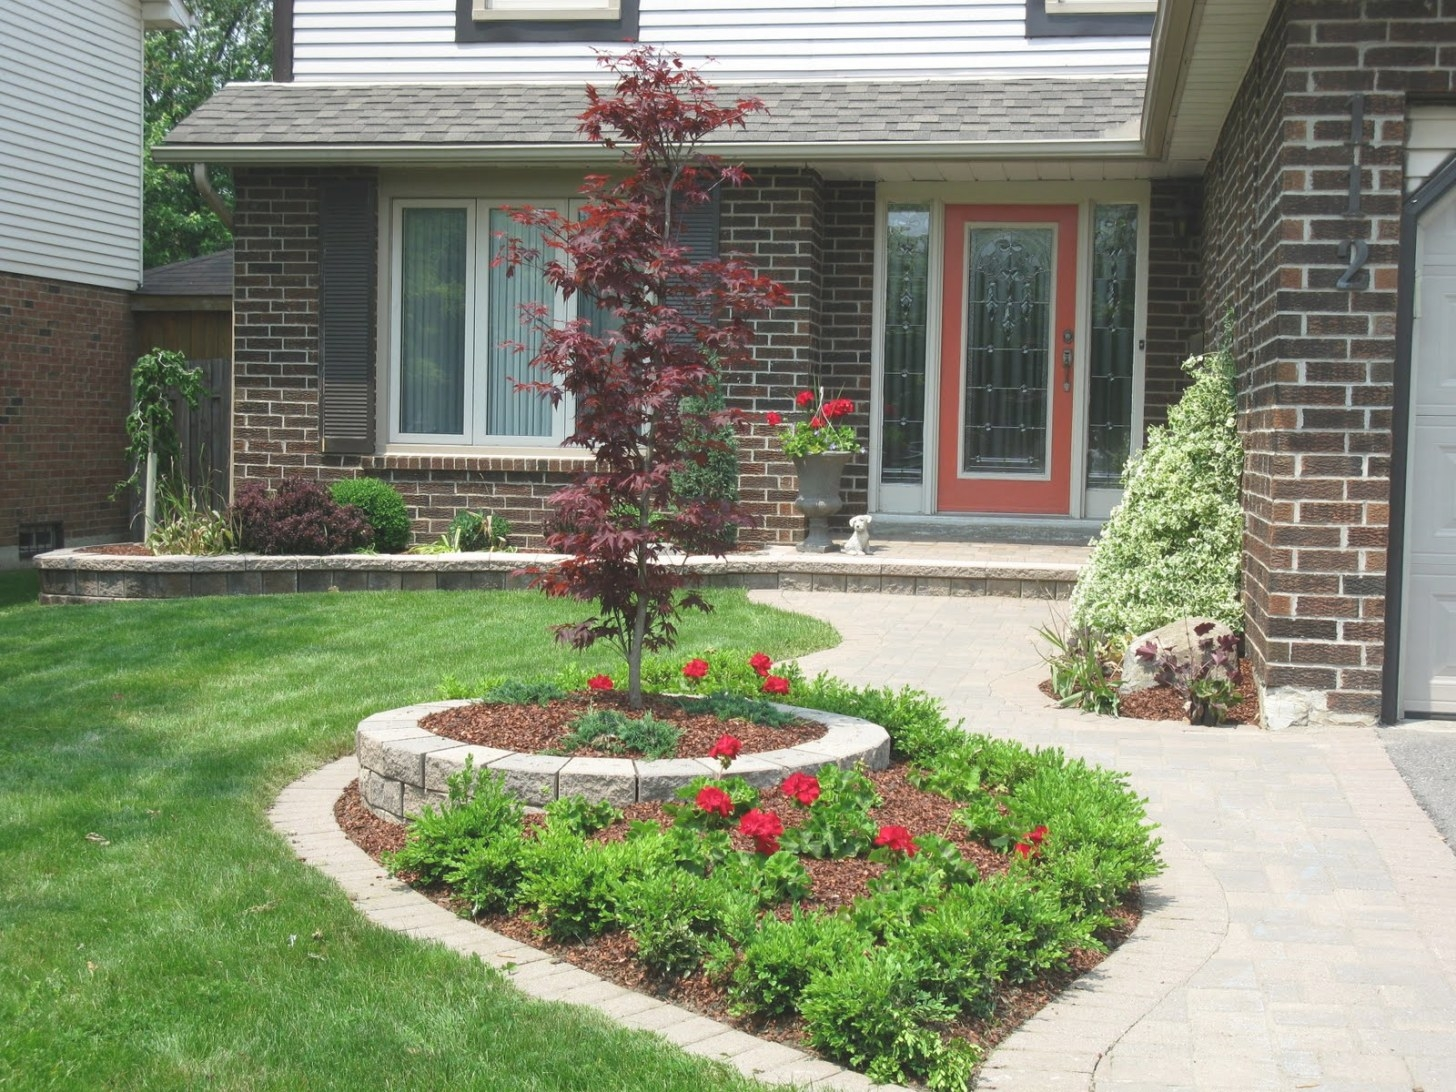 White Swan Homes And Gardens: Front Yard Makeover On Jones throughout Front Yard Landscaping Ideas